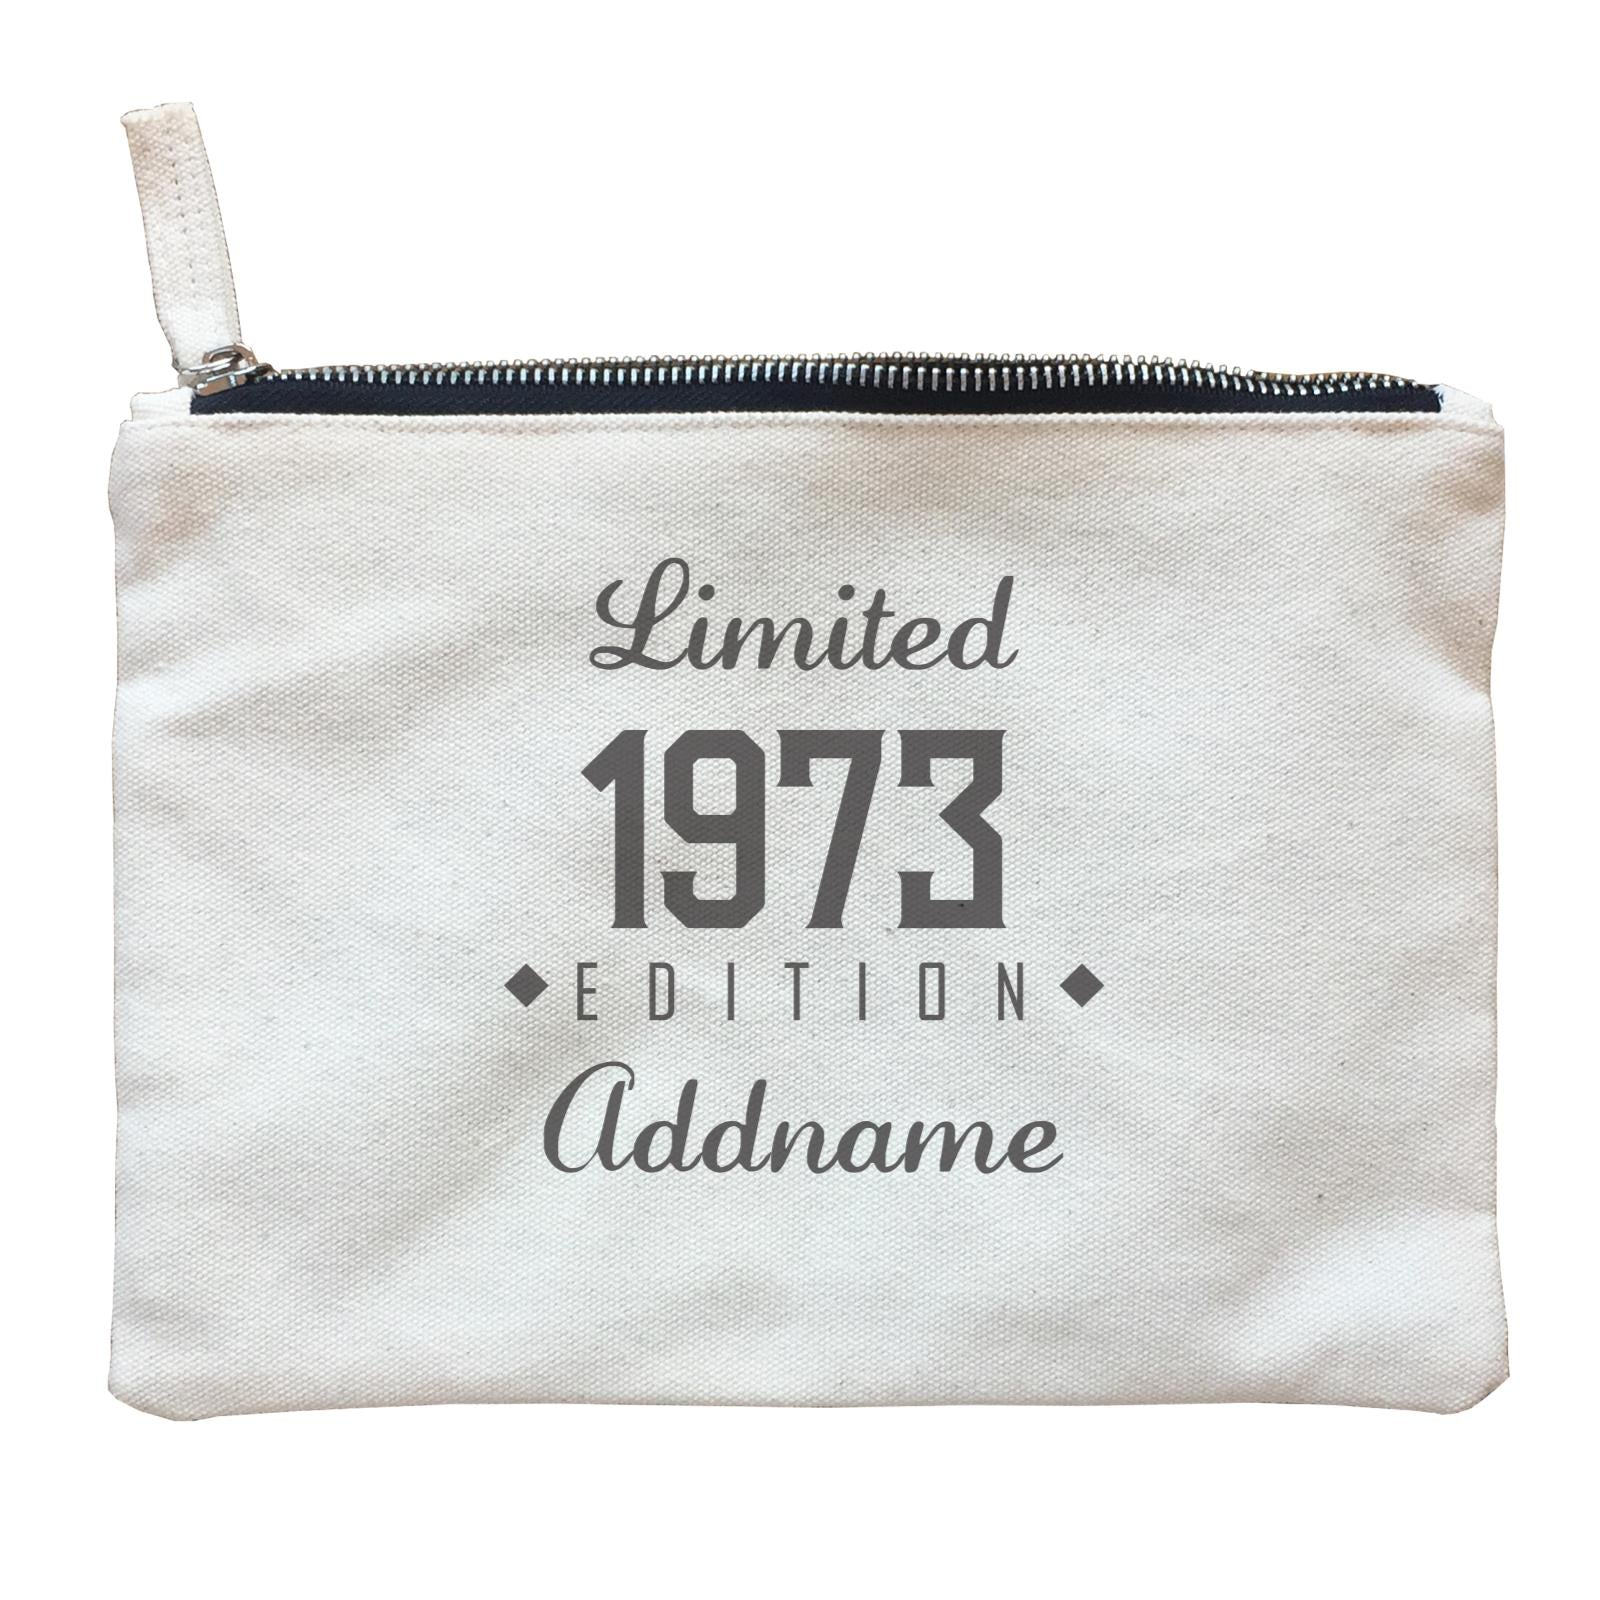 Personalize It Birthyear Limited Edition Diamond with Addname and Add Year Zipper Pouch